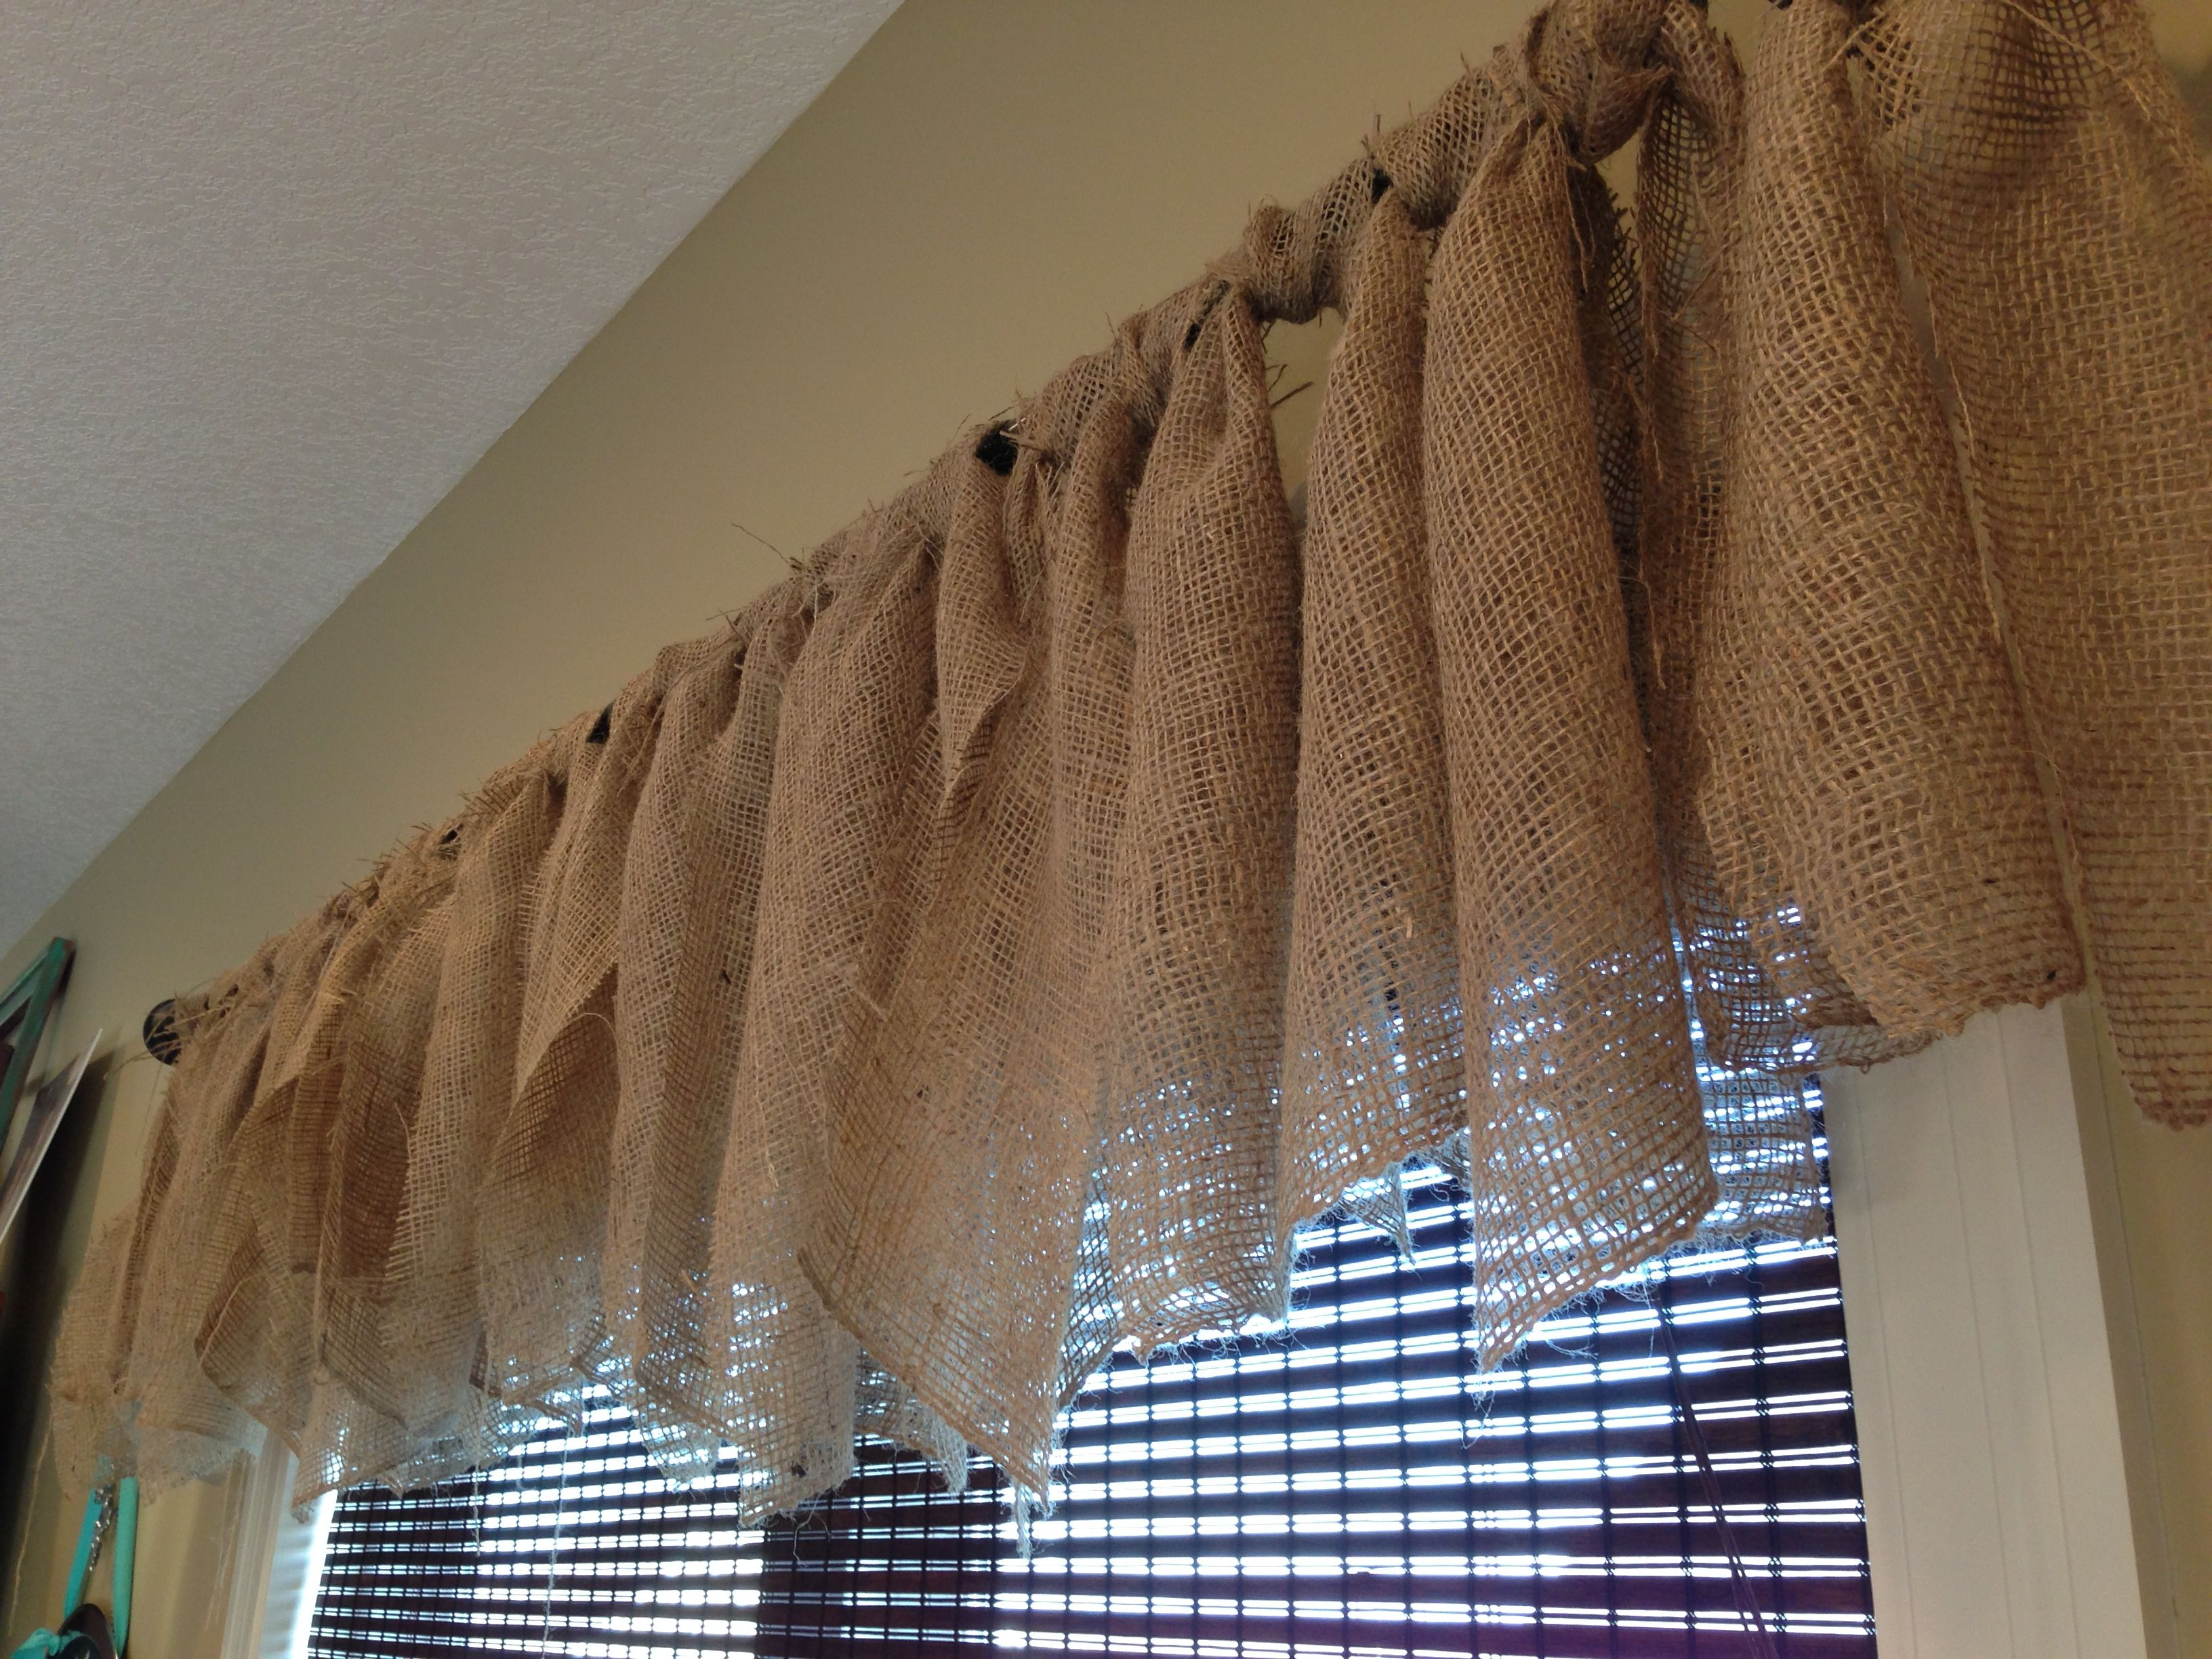 Burlap Curtains In My Dining Room My Favorite Inexpensive Project Diy Curtains Curtains Living Room Colorful Curtains